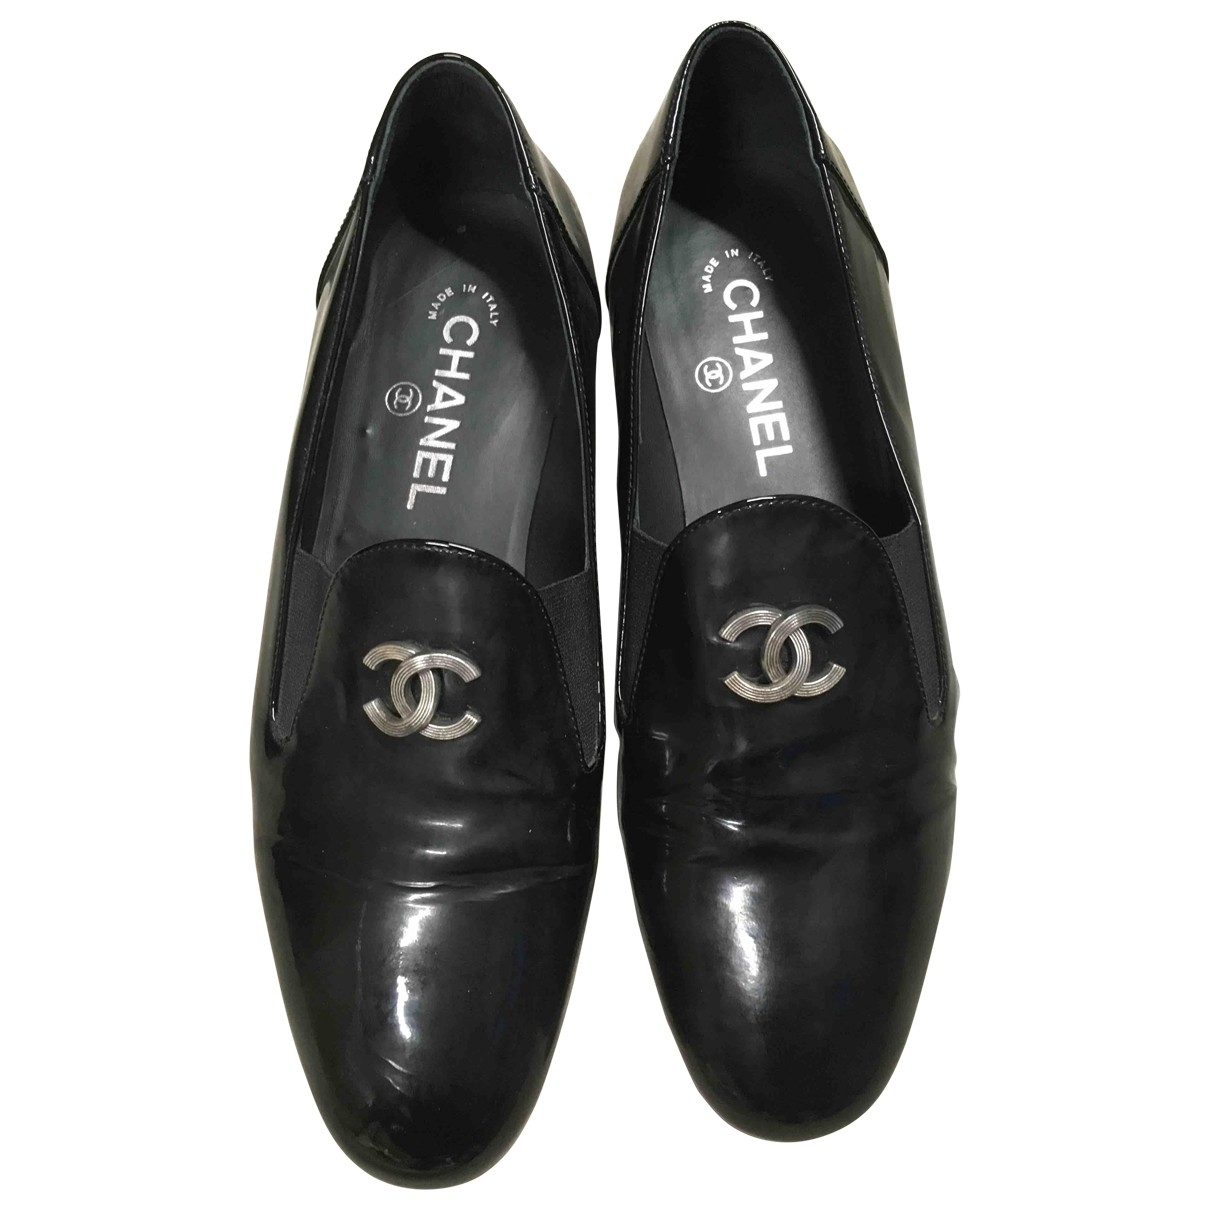 Chanel \N Mokassins in  Schwarz Lackleder